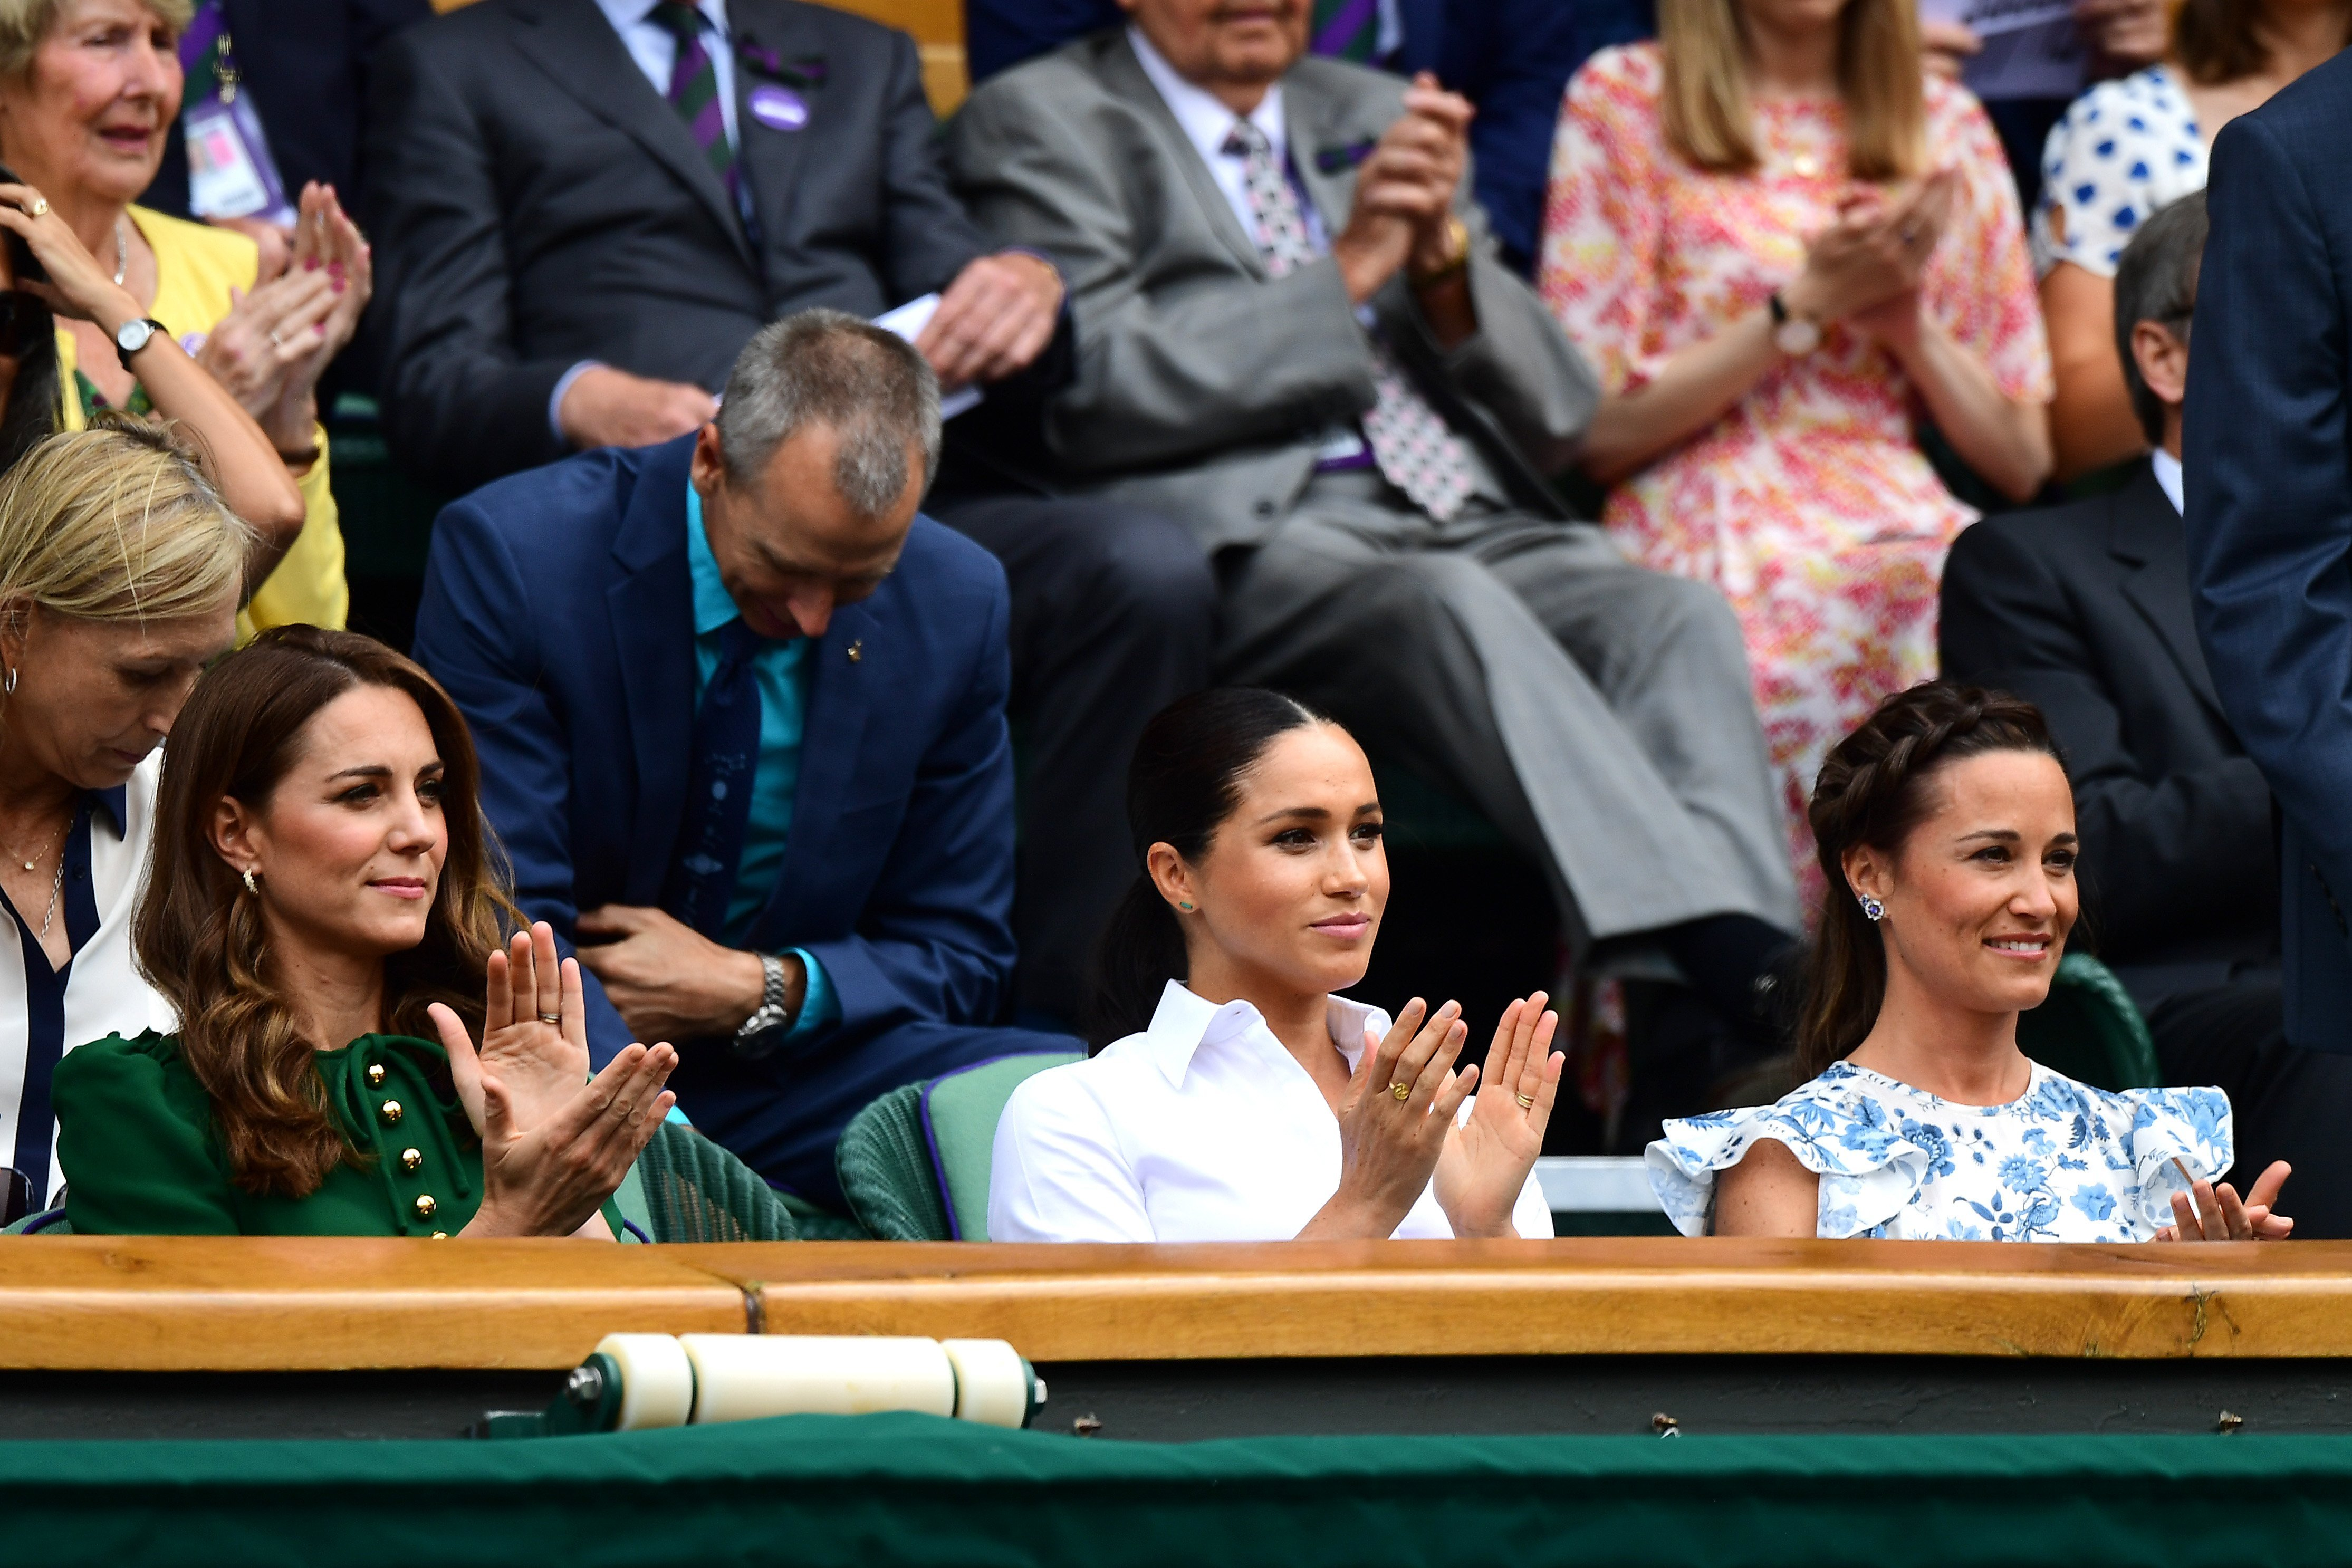 Duchesses Meghan and Catherine attend Wimbledon final